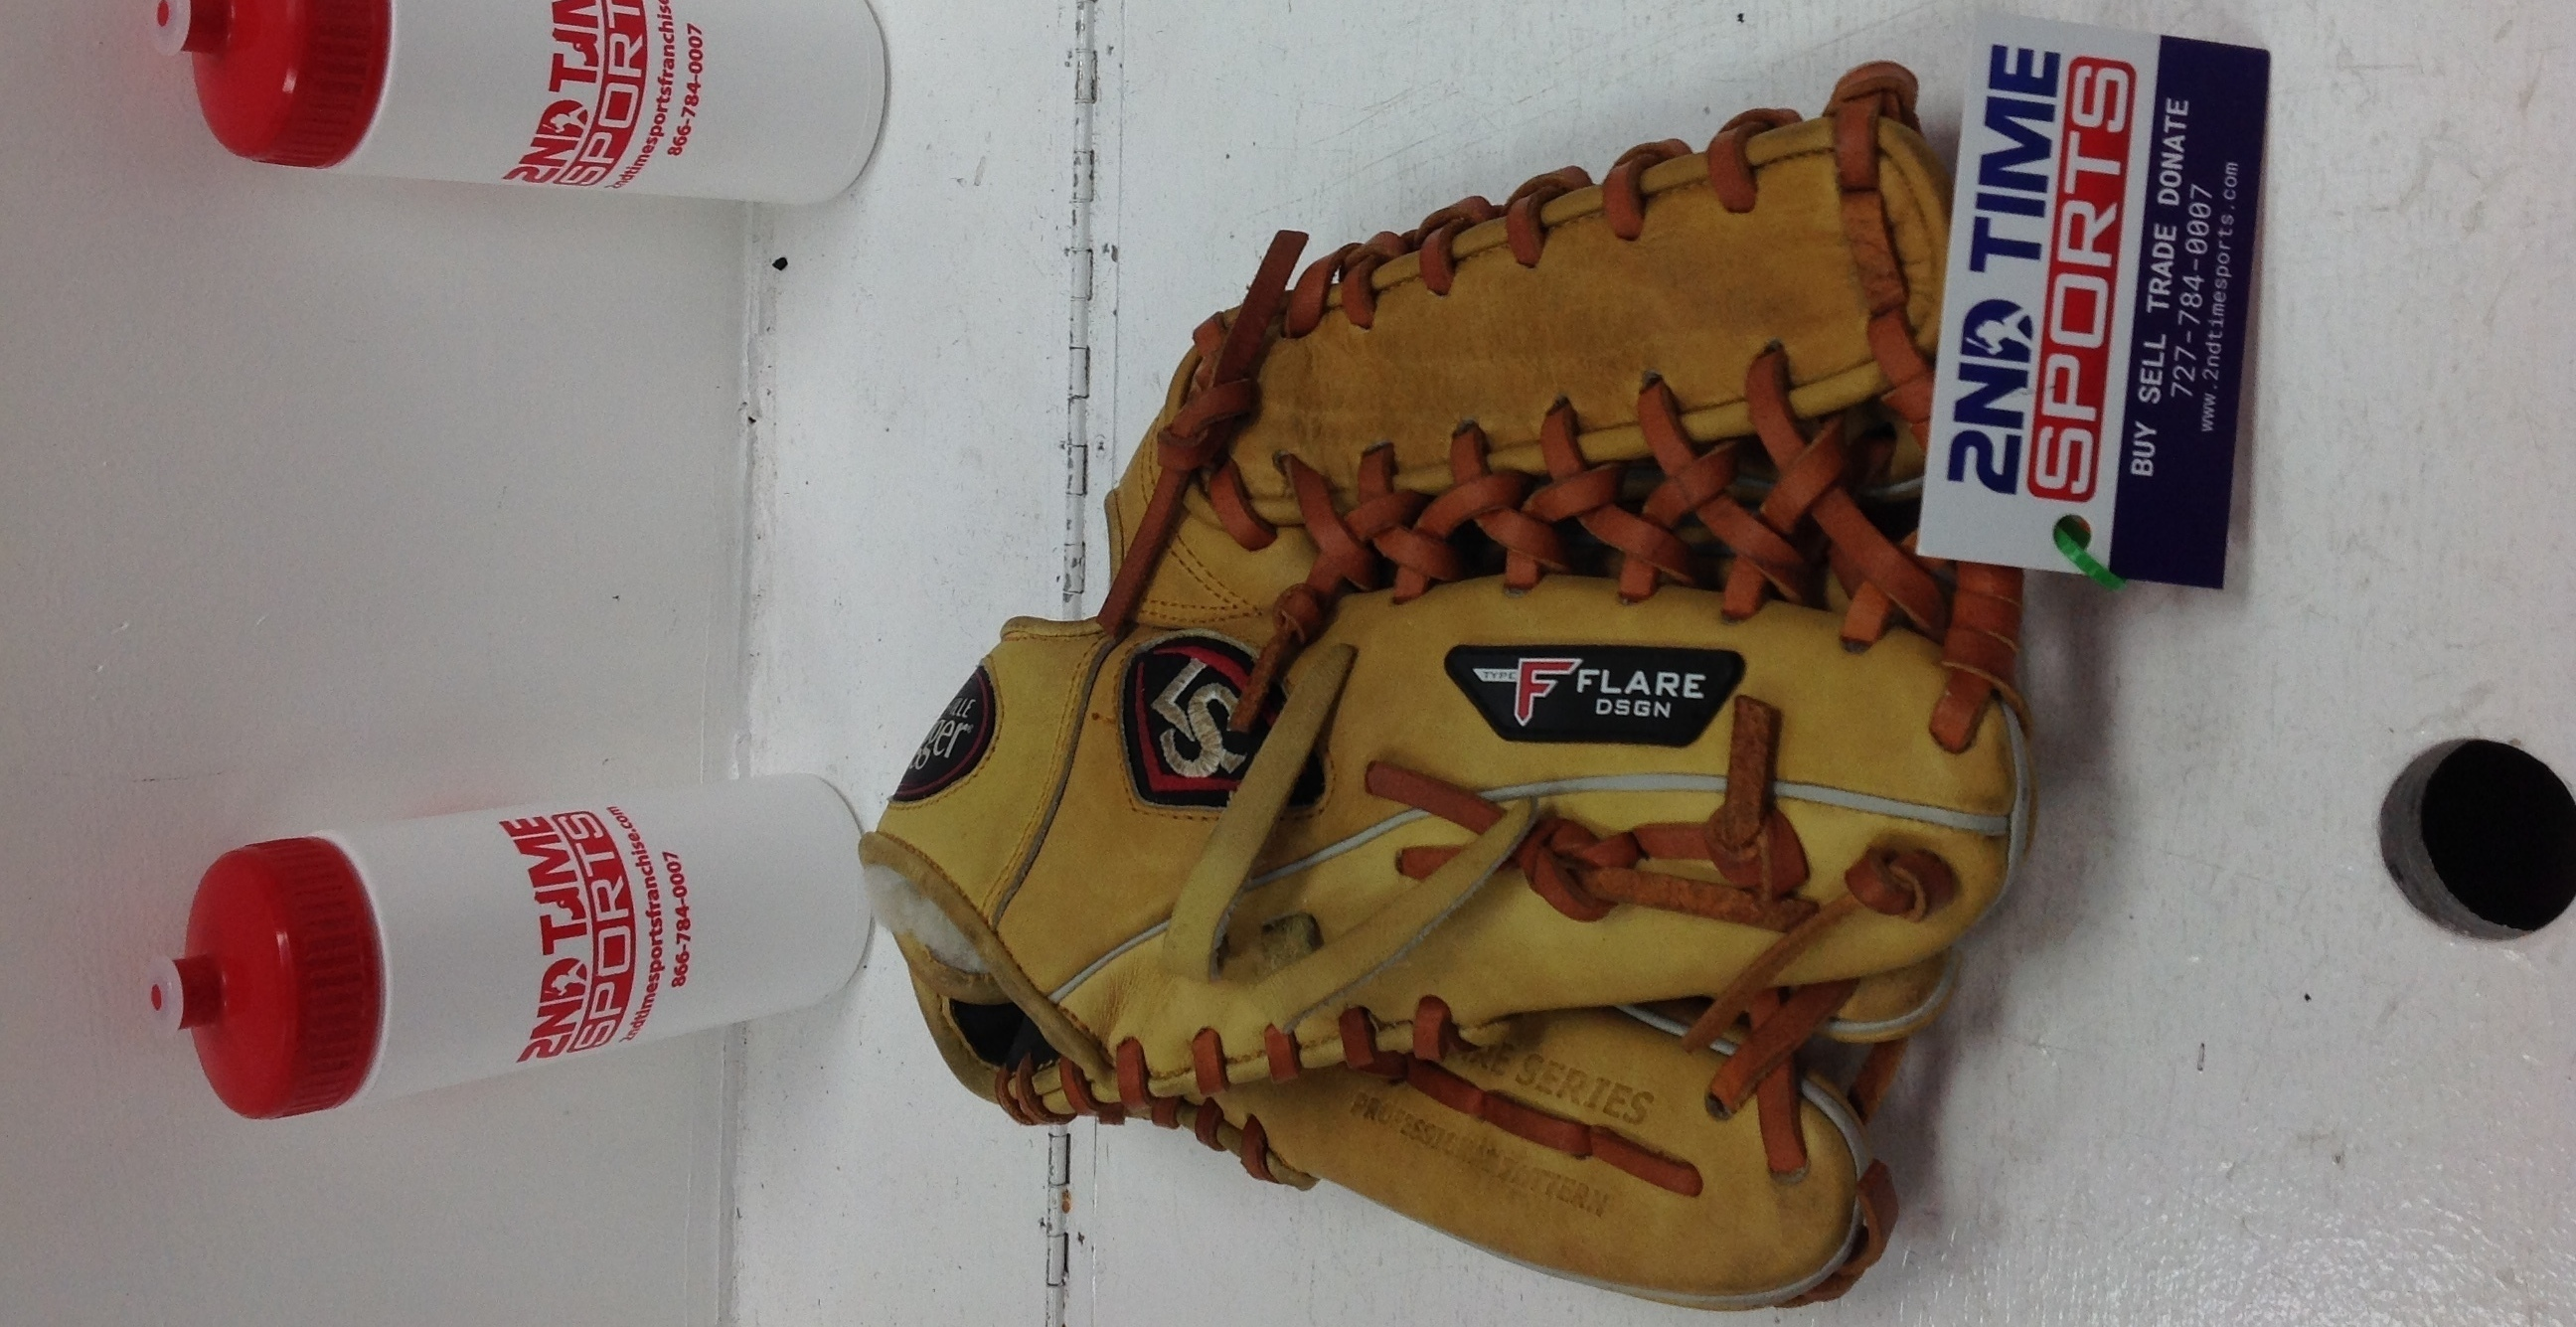 LOUISVILLE SLUGGER PF14-CR BASEBALL GLOVE BASEBALL RH THROW 13